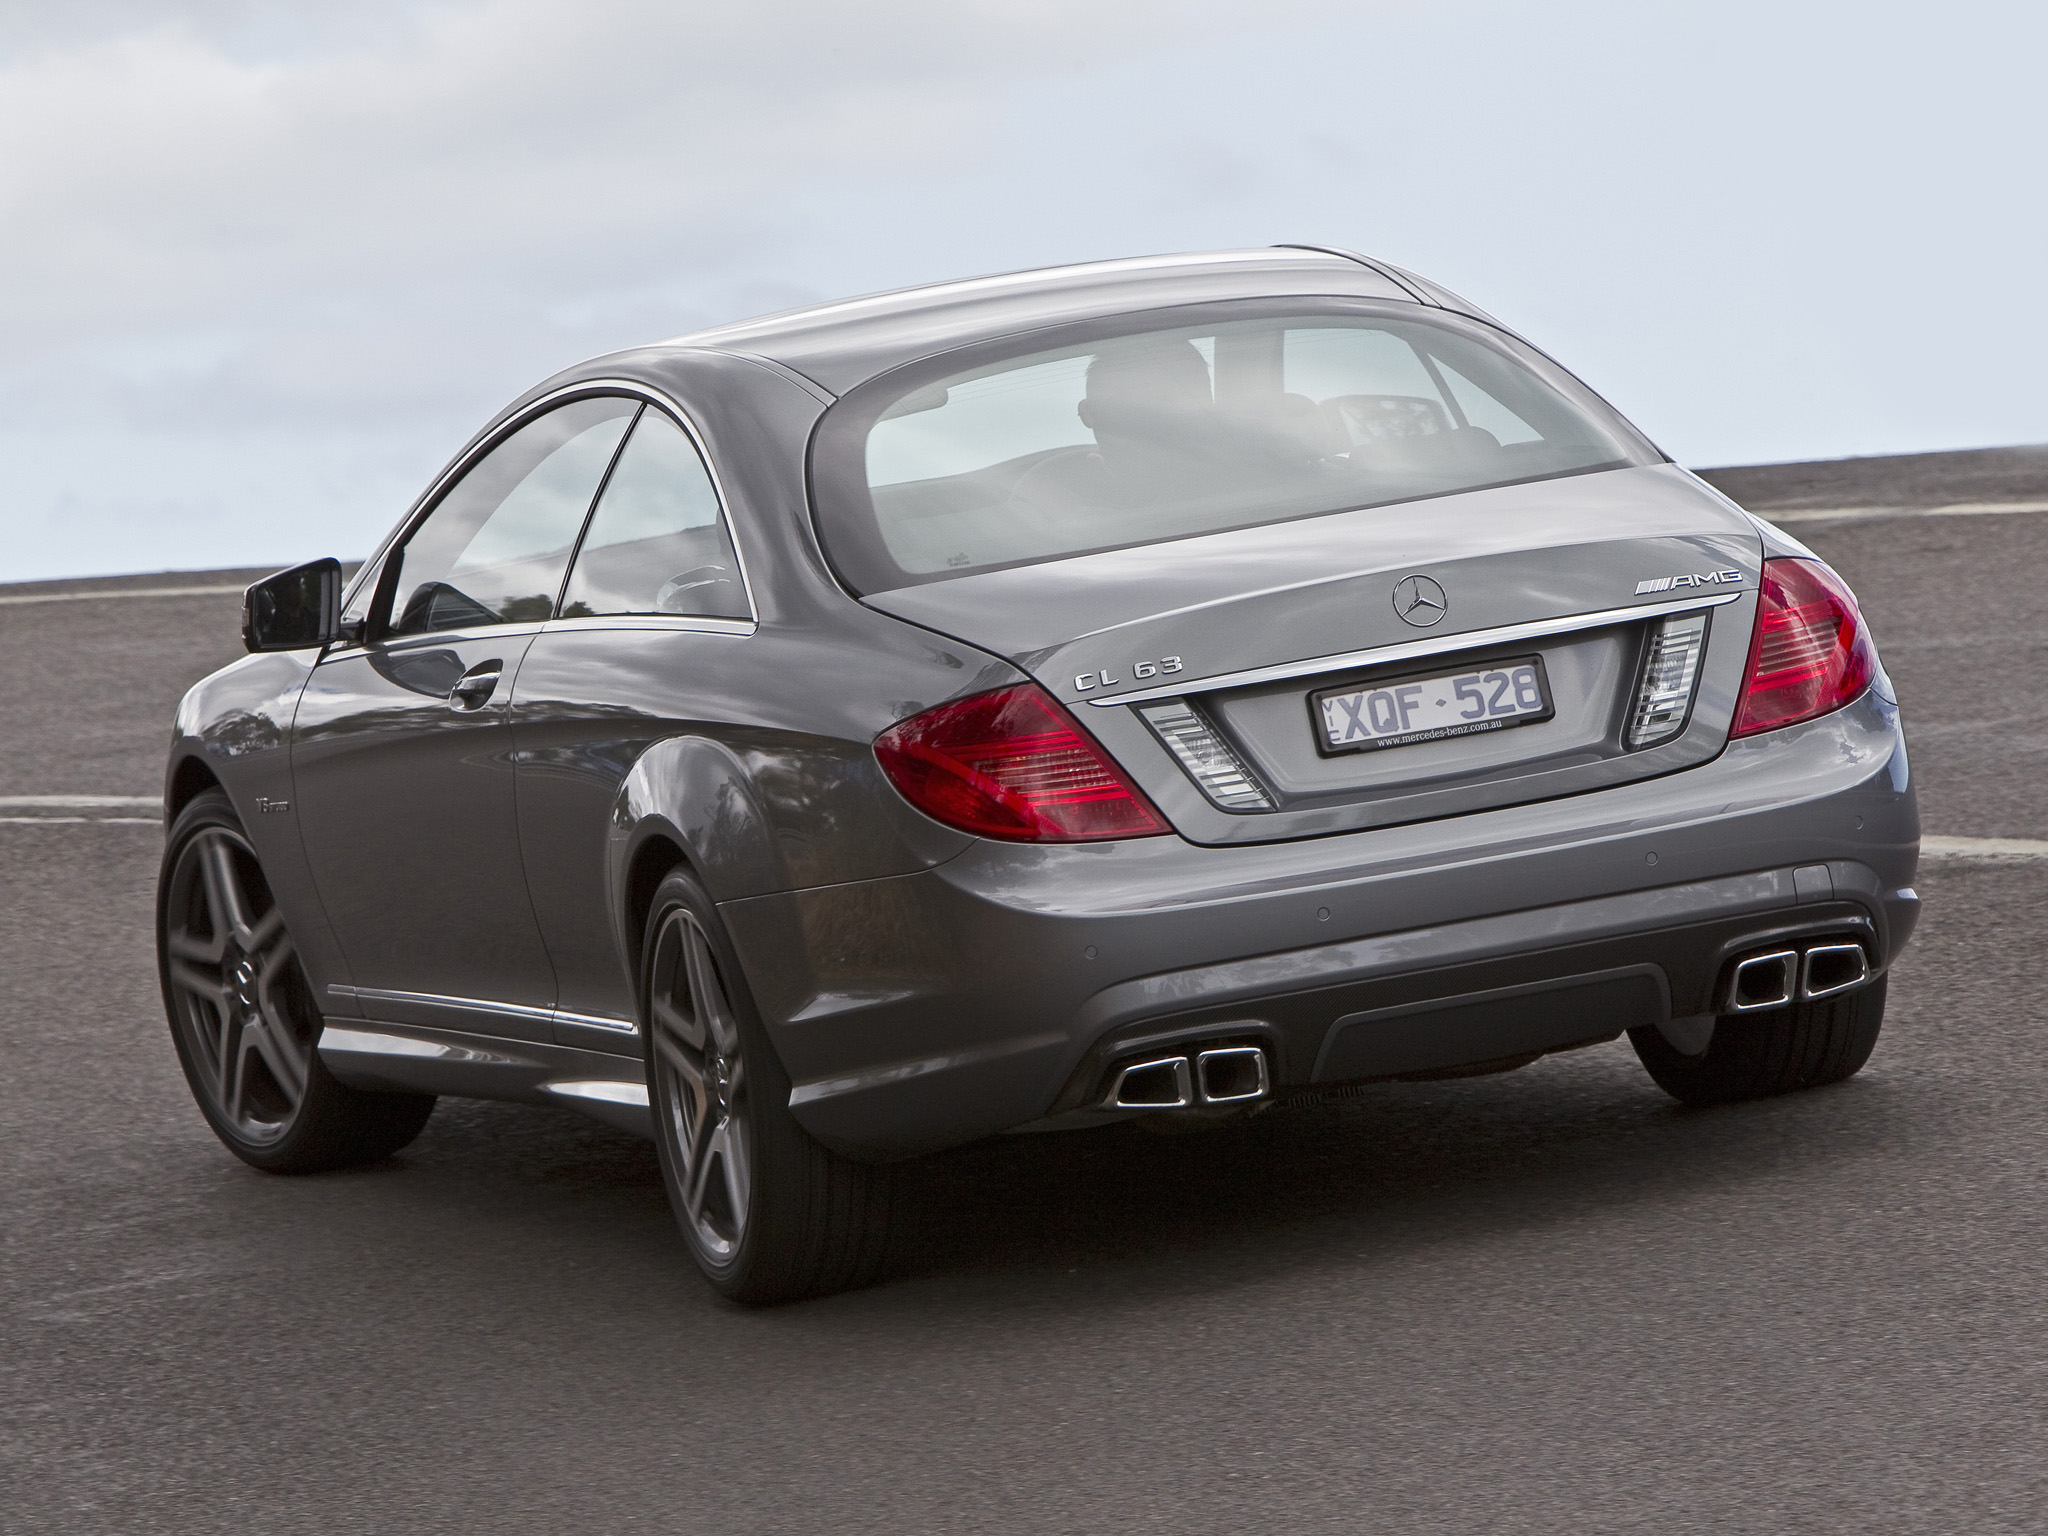 Mercedes Benz Cl63 Amg Picture 96471 Photo Gallery Pic Link Https Mk35 Pic96471